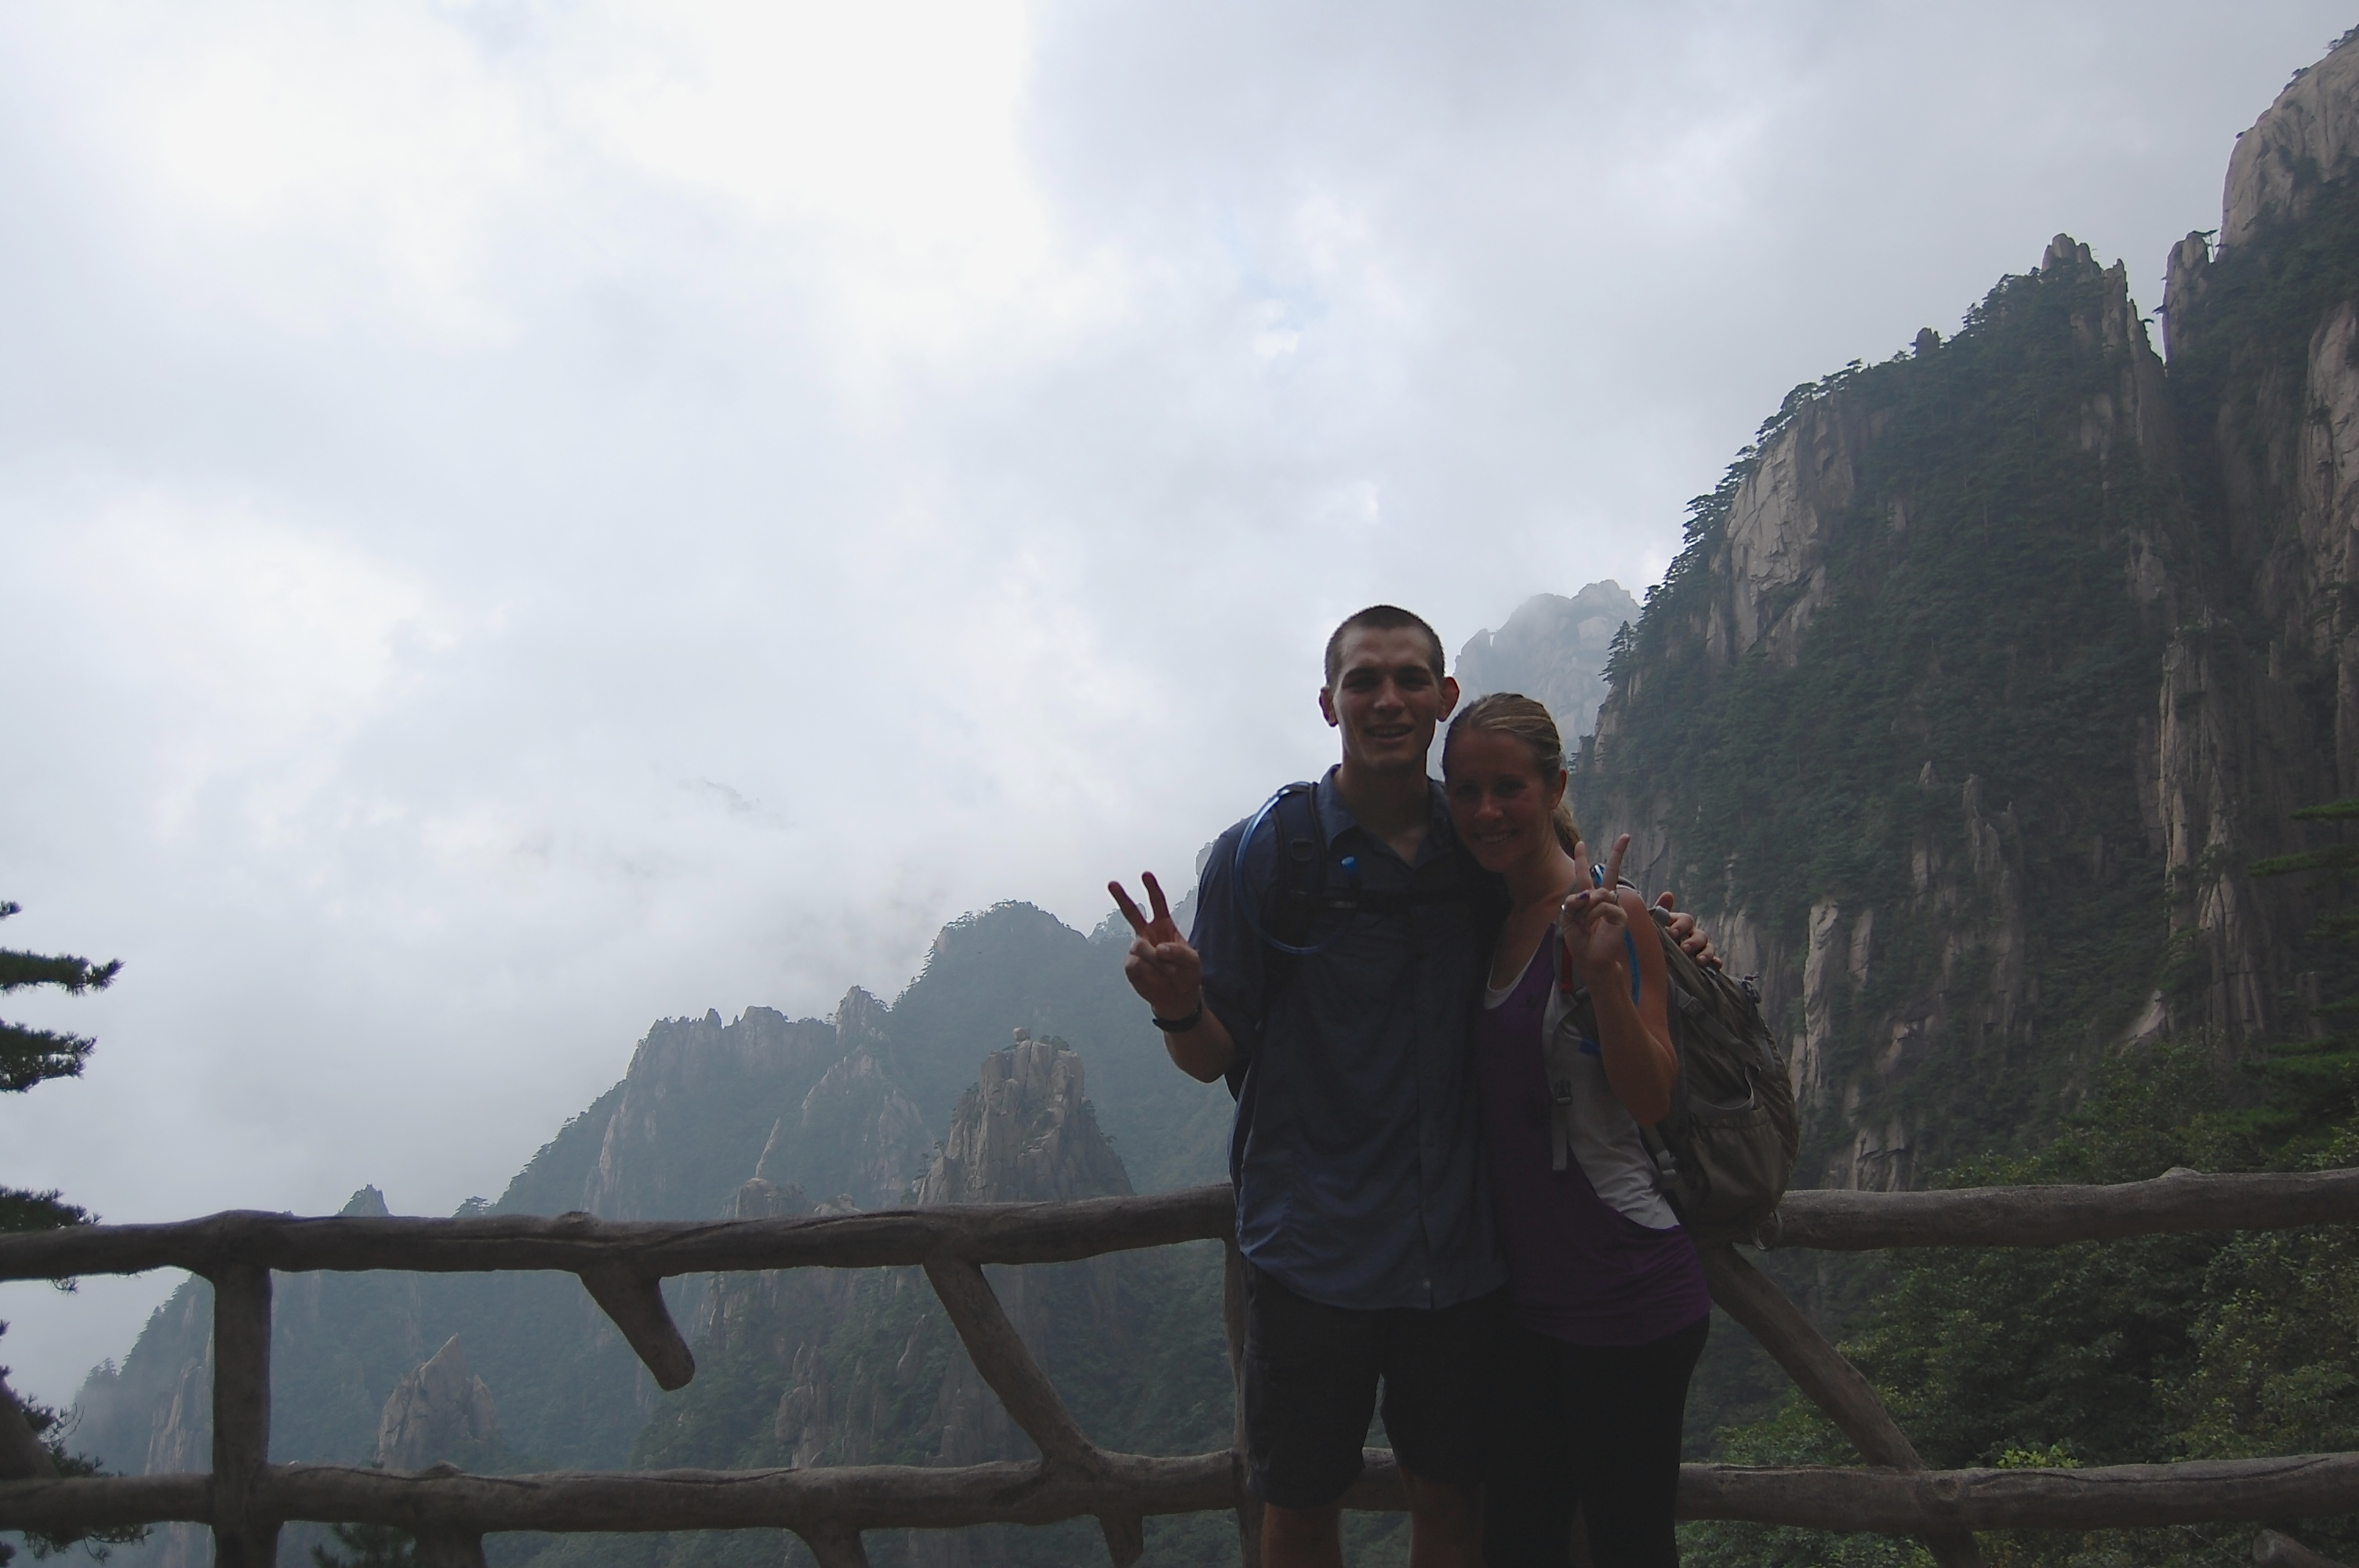 huang shan single guys One day trip from shanghai to huangshan hey guys, i am planning on taking a trip to shanghai in july and was wondering if its possible to visit the mountain in a day and be back in shanghai i found that a bus from shanghai station to tangkou will take roughly 6 hours if i leave on the first one at 6am, spend a few hours on the mountain (4.